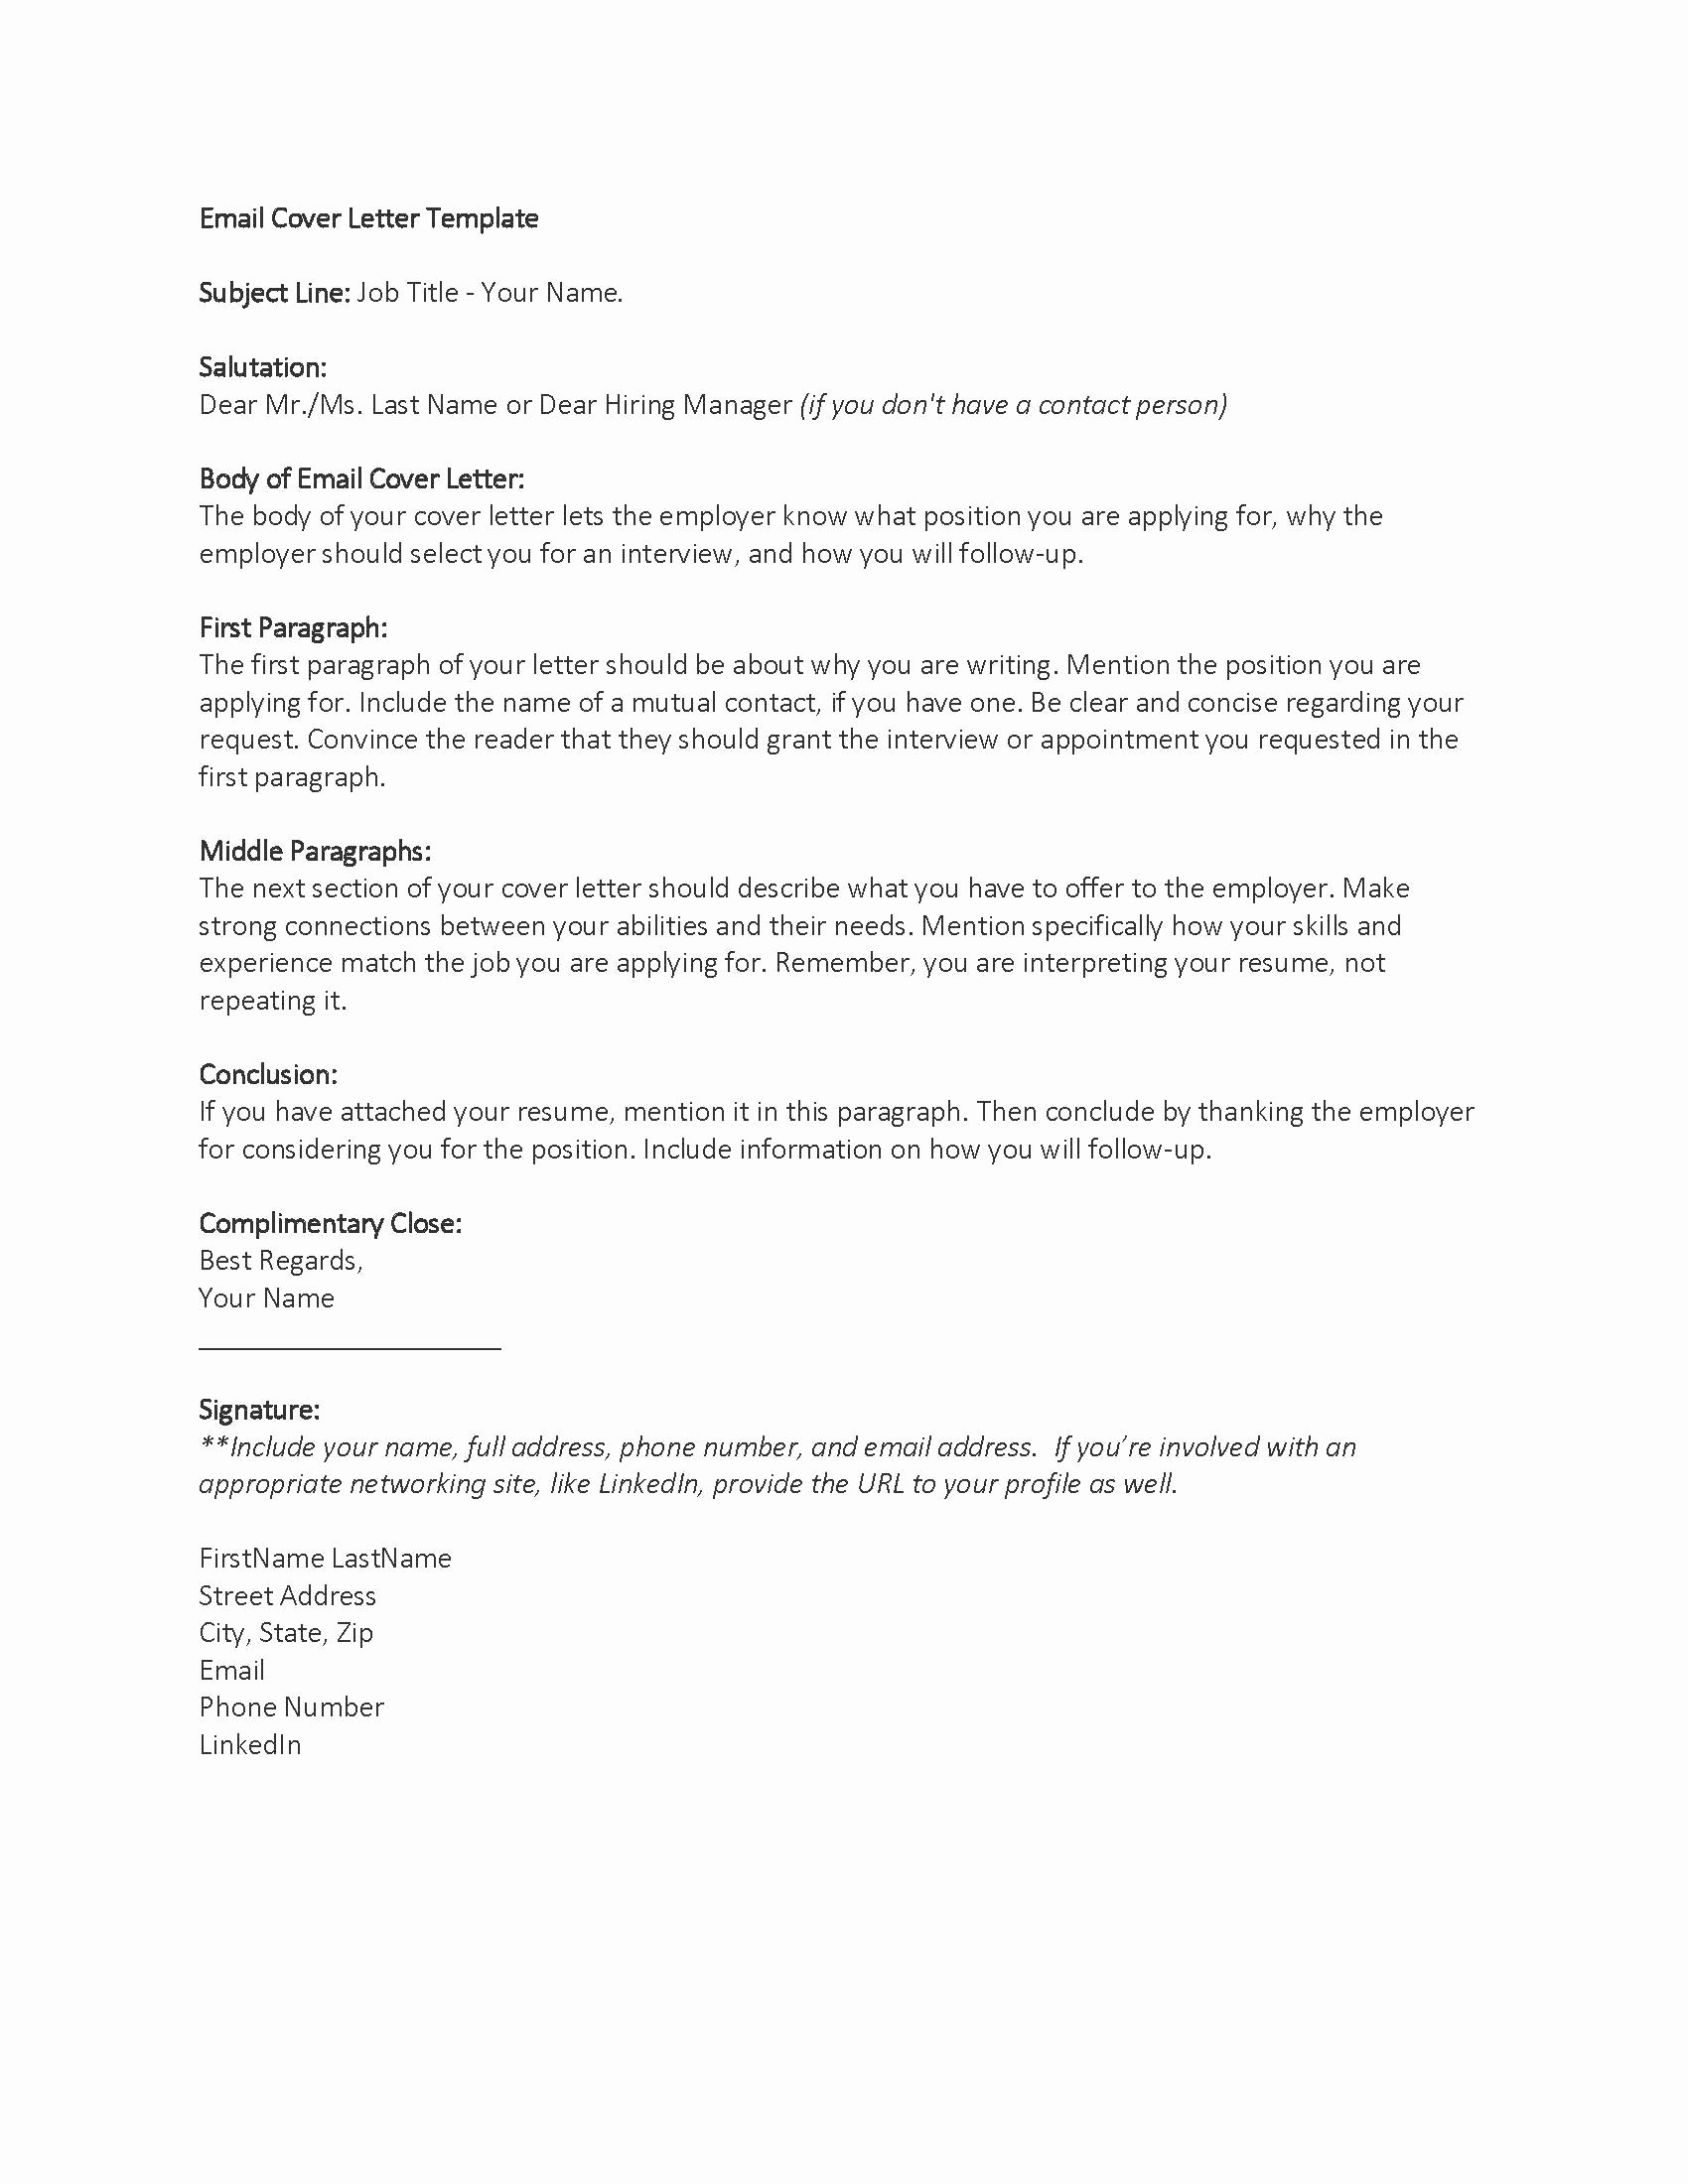 Email Cover Letter Templates Inspirational Application Letter Sample Cover Letter Template Email